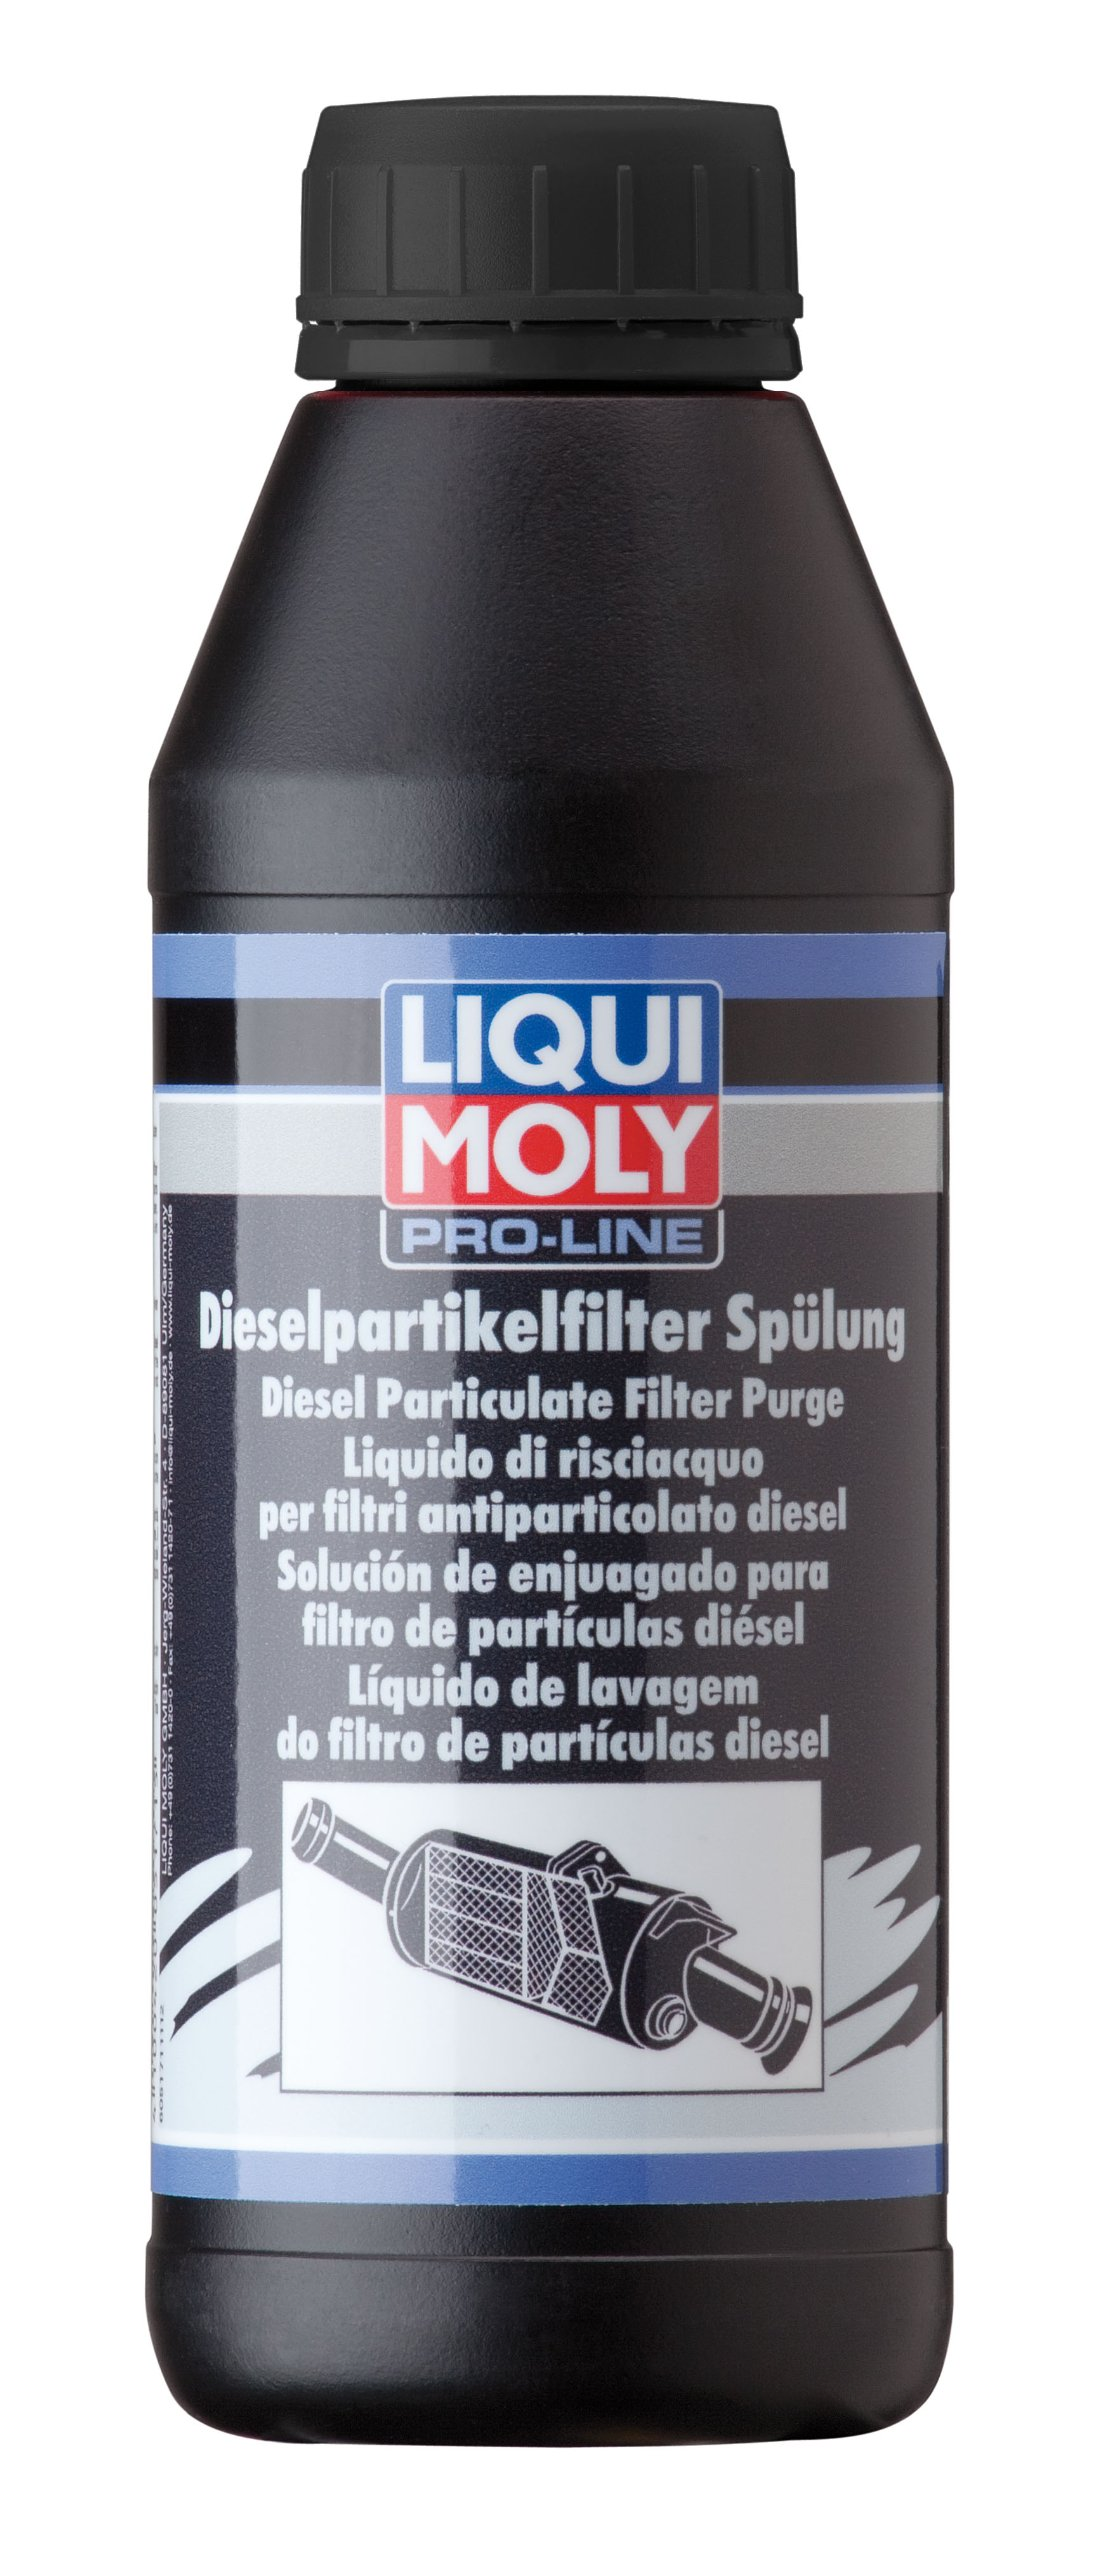 Liqui Moly 5171 Diesel Particulate Filter Purge Fluid - 500 ml by Liqui Moly